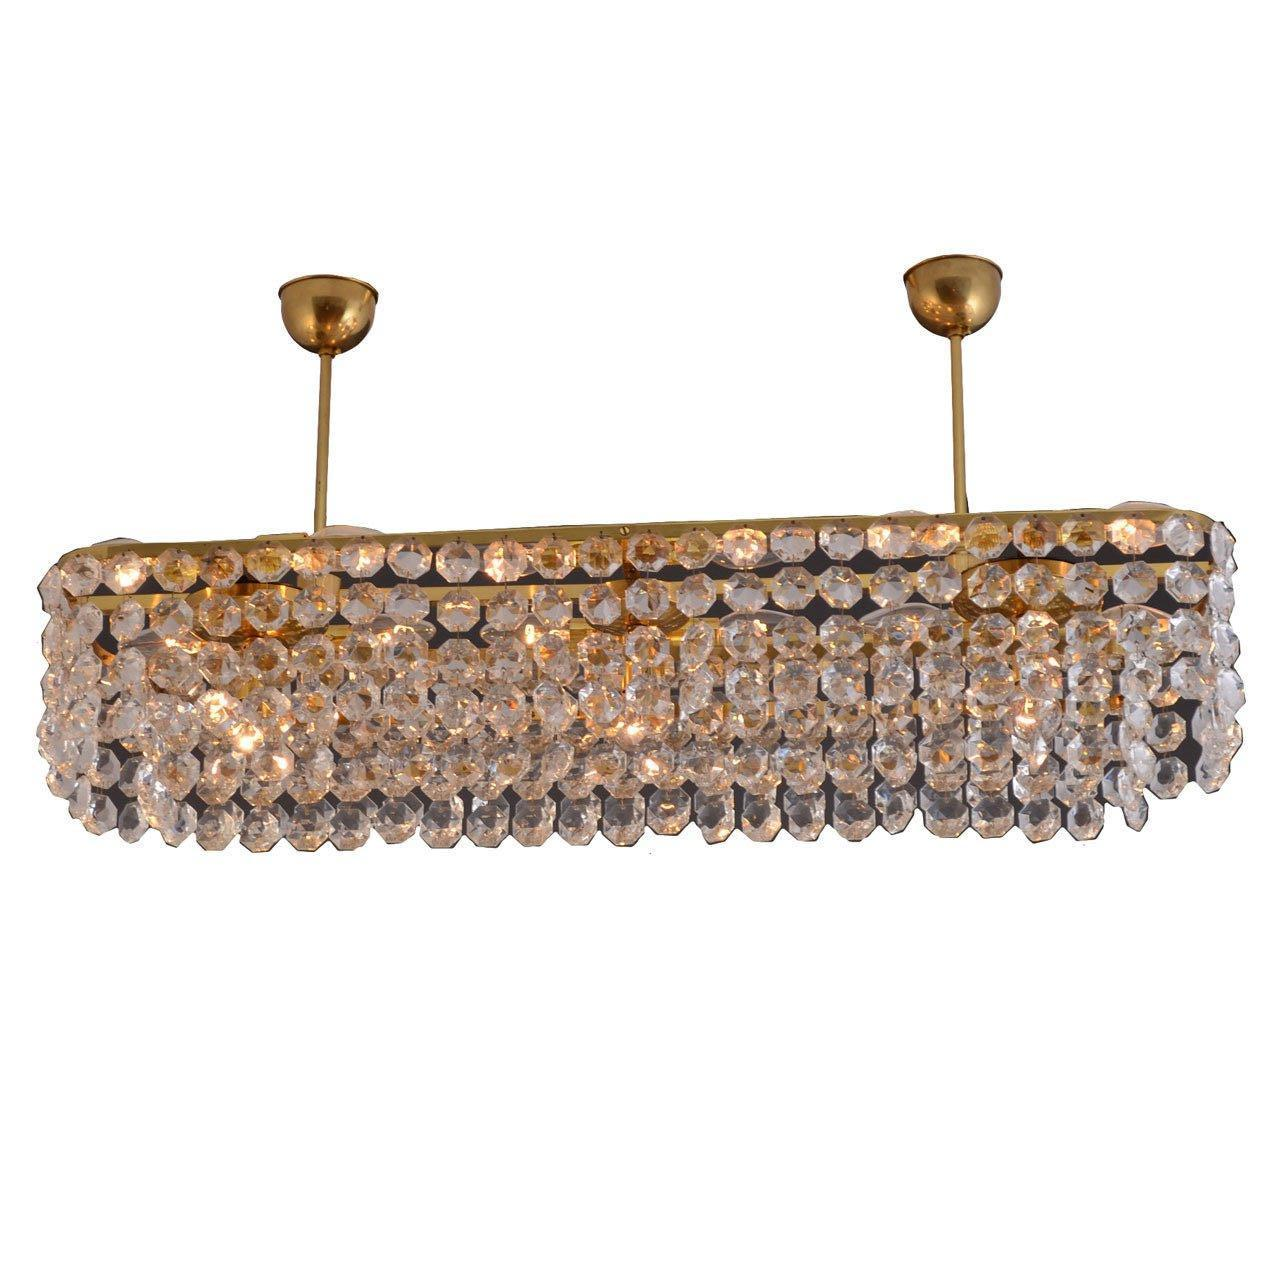 Large square Mid-Century Modern Crystal Chandelier 15 flames - Re Edition